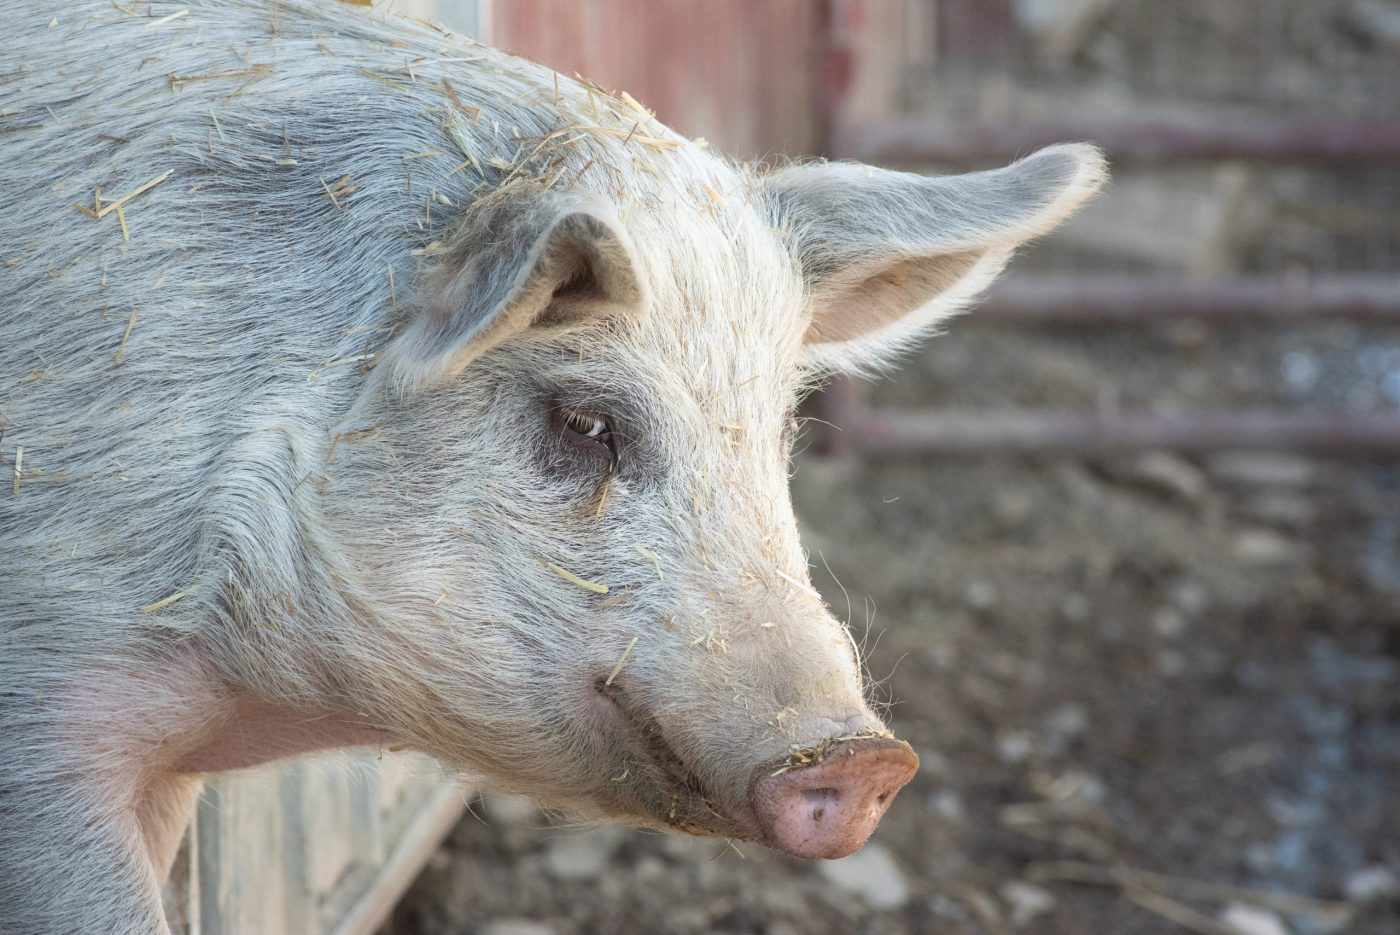 Wyatt pig at Farm Sanctuary